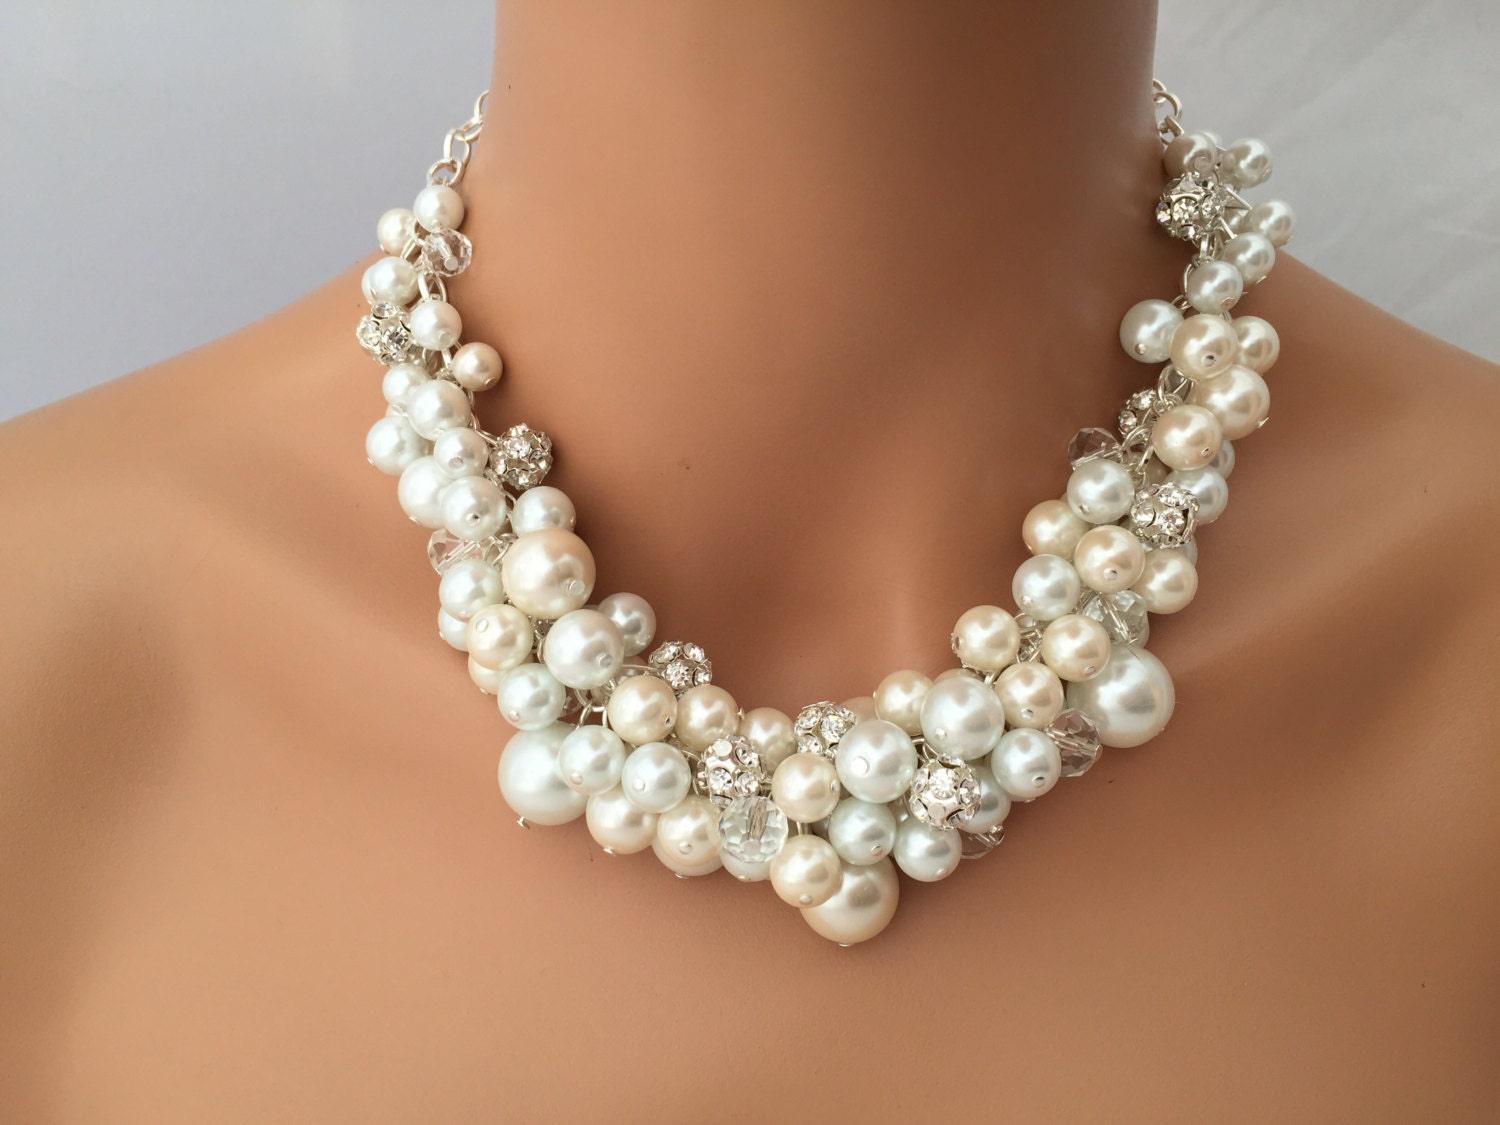 Chunky Ivory And White Pearl Necklace With Rhinestones And